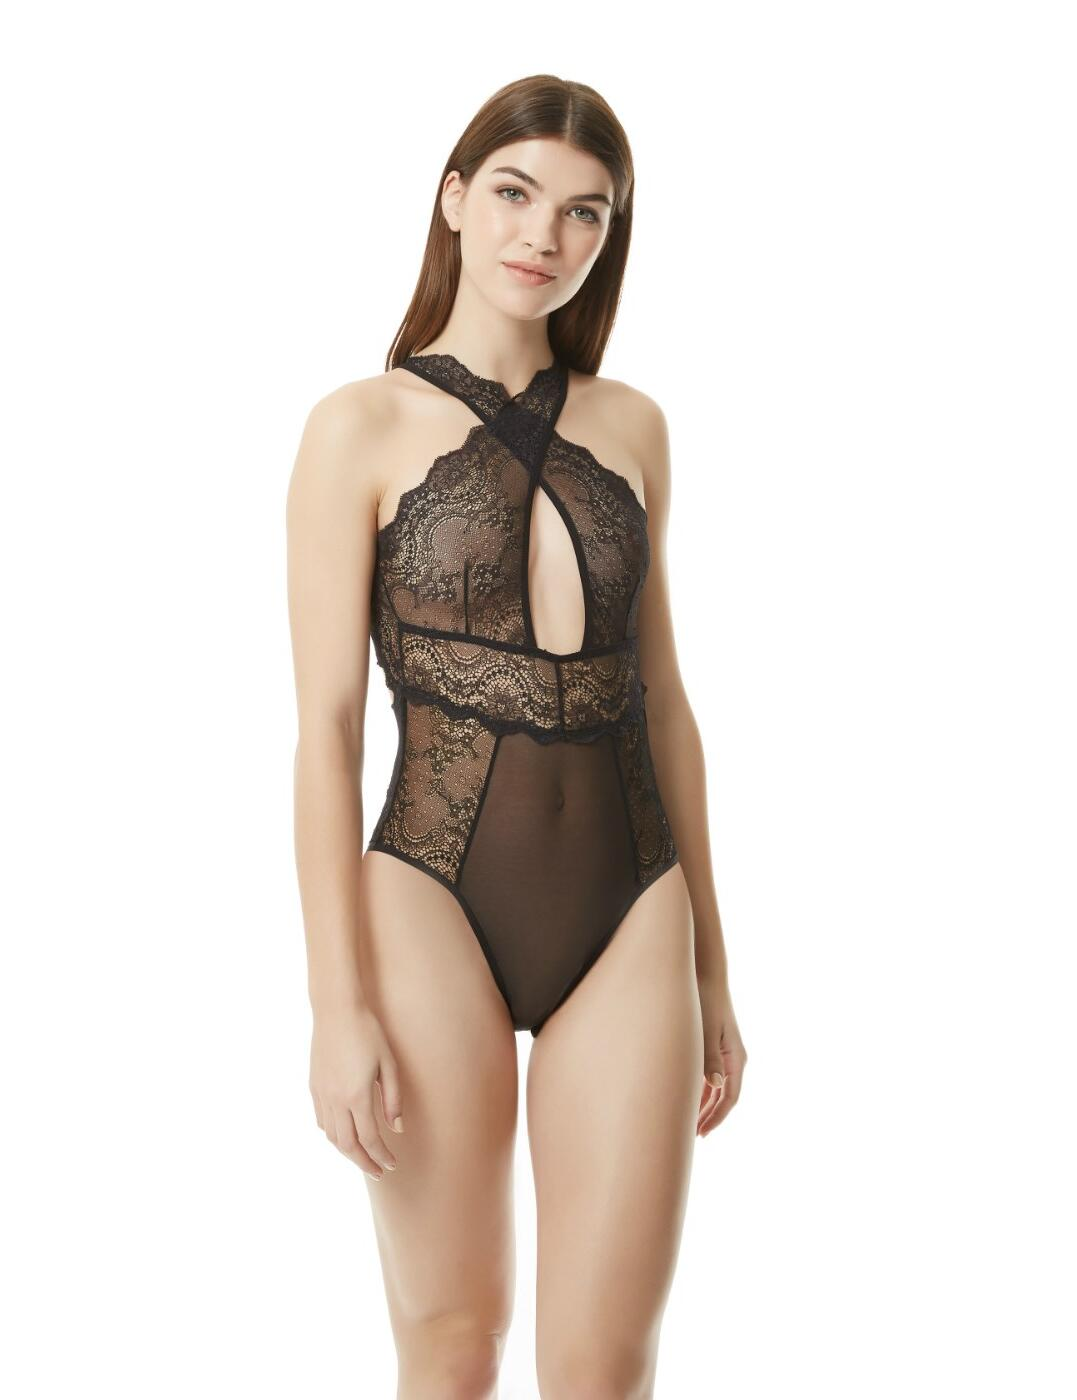 40257 Bluebella Adrienne Body - 40257 Black